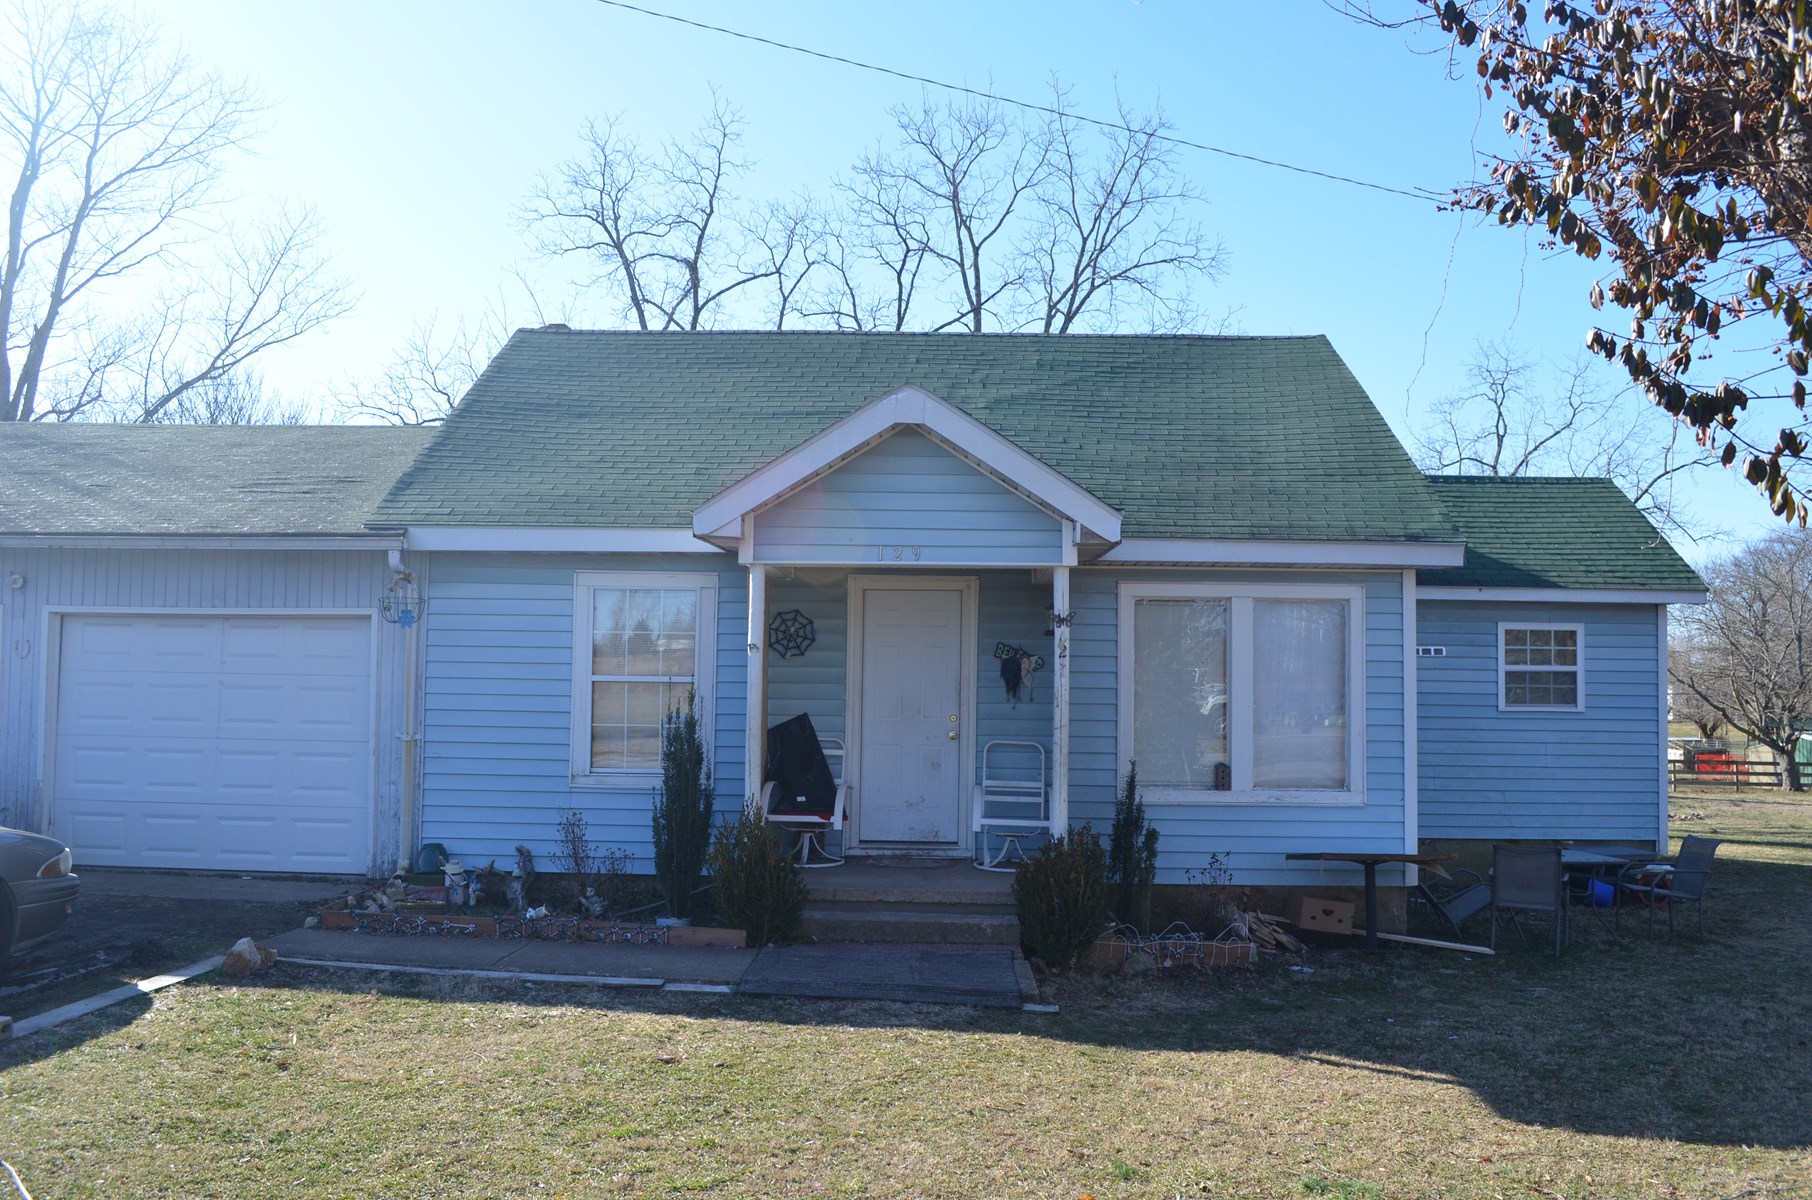 2 bedroom, 2 bath home with city utilities, country setting.